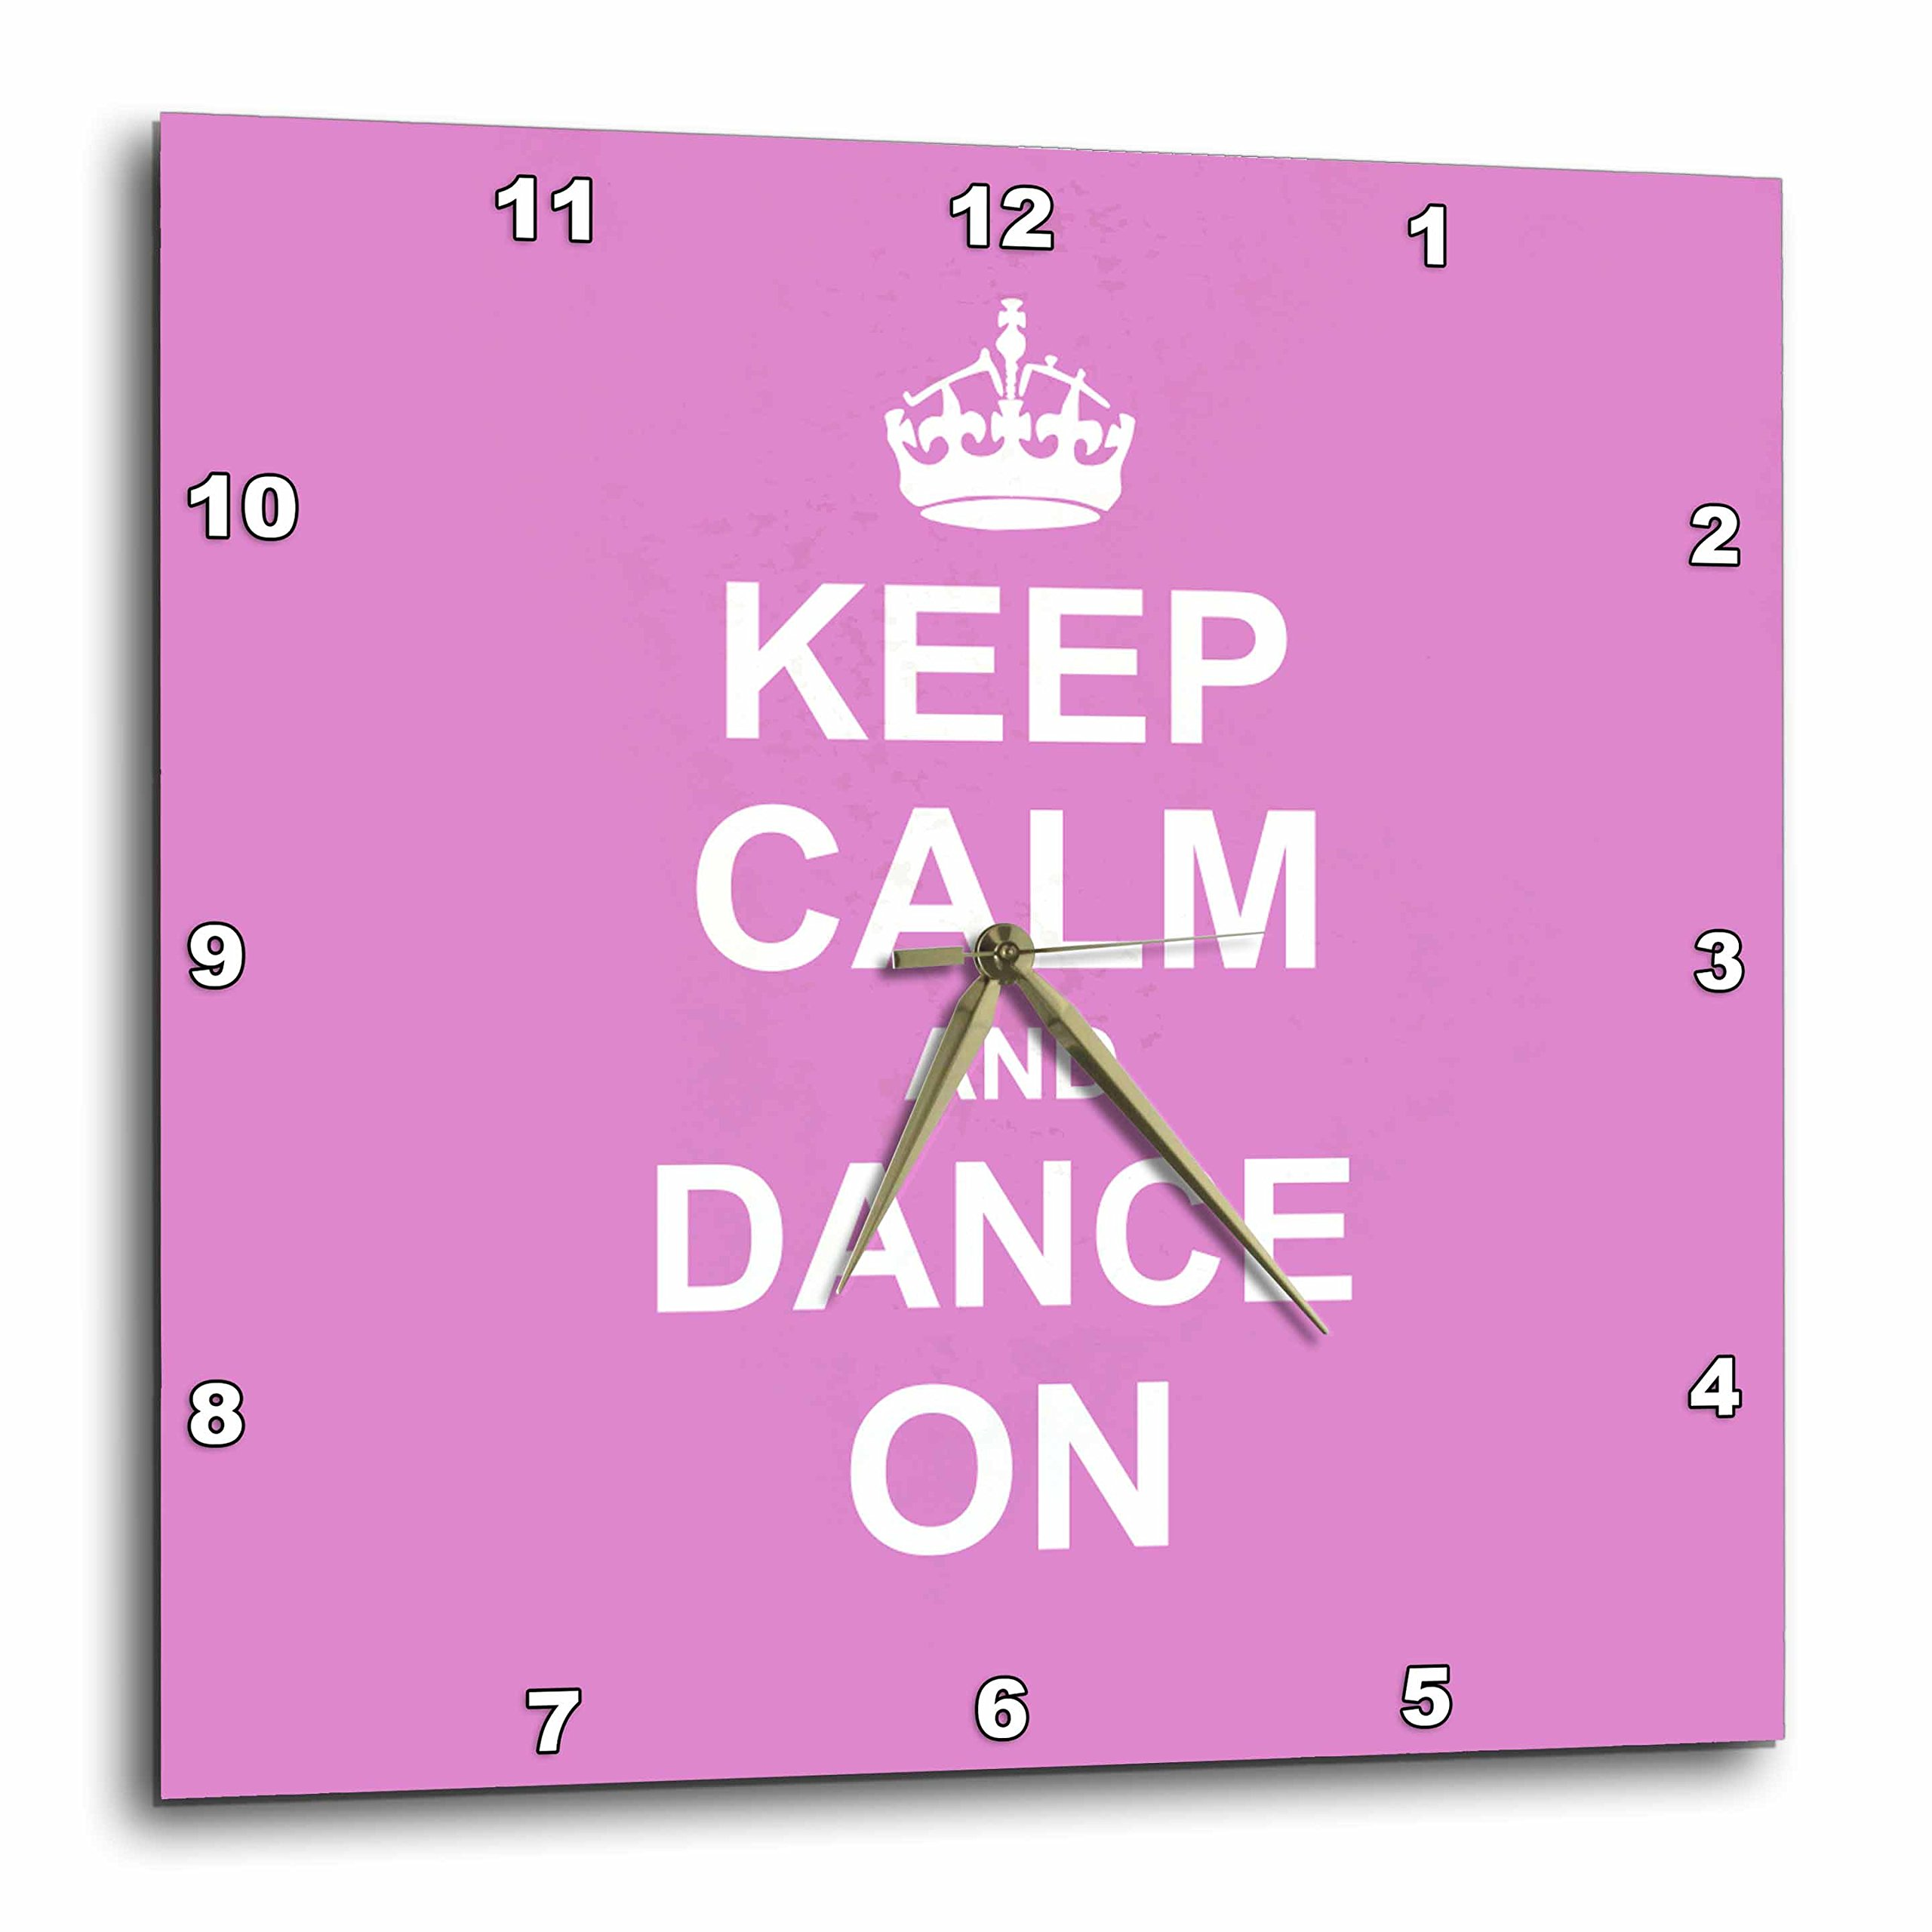 3dRose Keep Calm & Dance on - Carry on Dancing - Gifts for Dancers - Girly Pink Fun Funny Humor Humorous - Wall Clock, 10 by 10-Inch (DPP_157705_1)